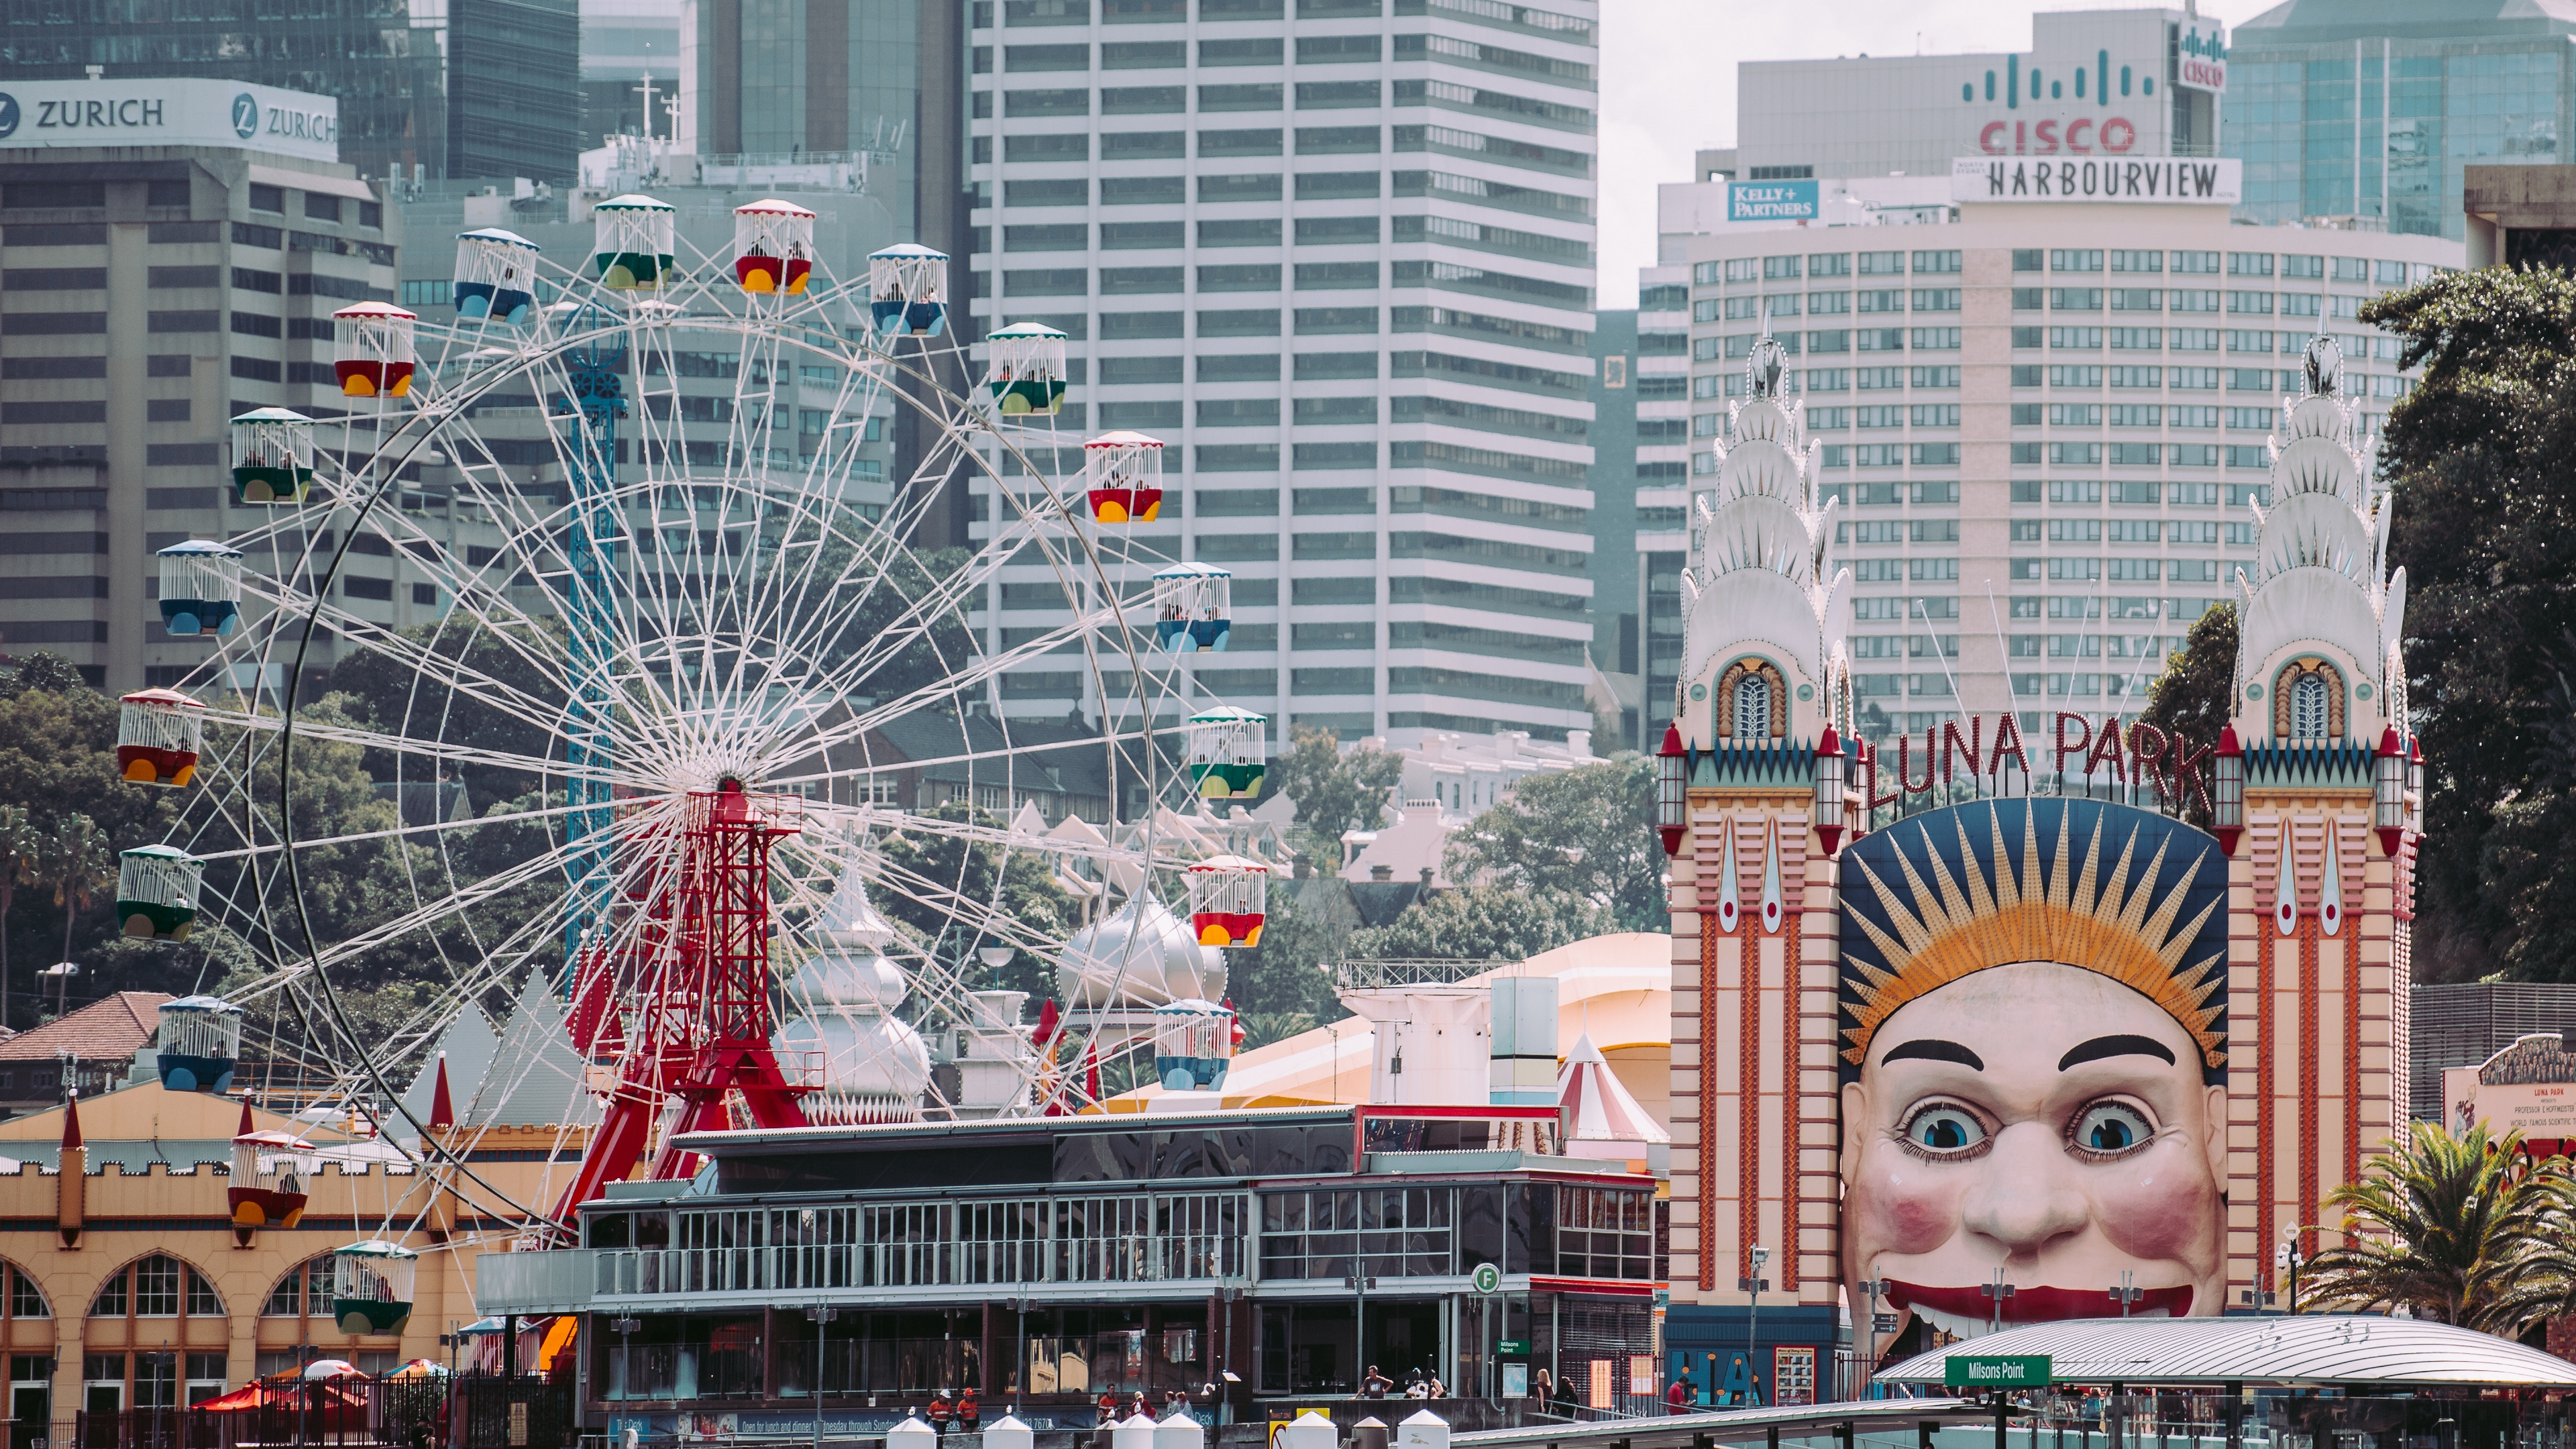 luna park sydney milsons point australia ferris wheel attractions 4k 1538066452 - luna park, sydney, milsons point, australia, ferris wheel, attractions 4k - Sydney, milsons point, luna park